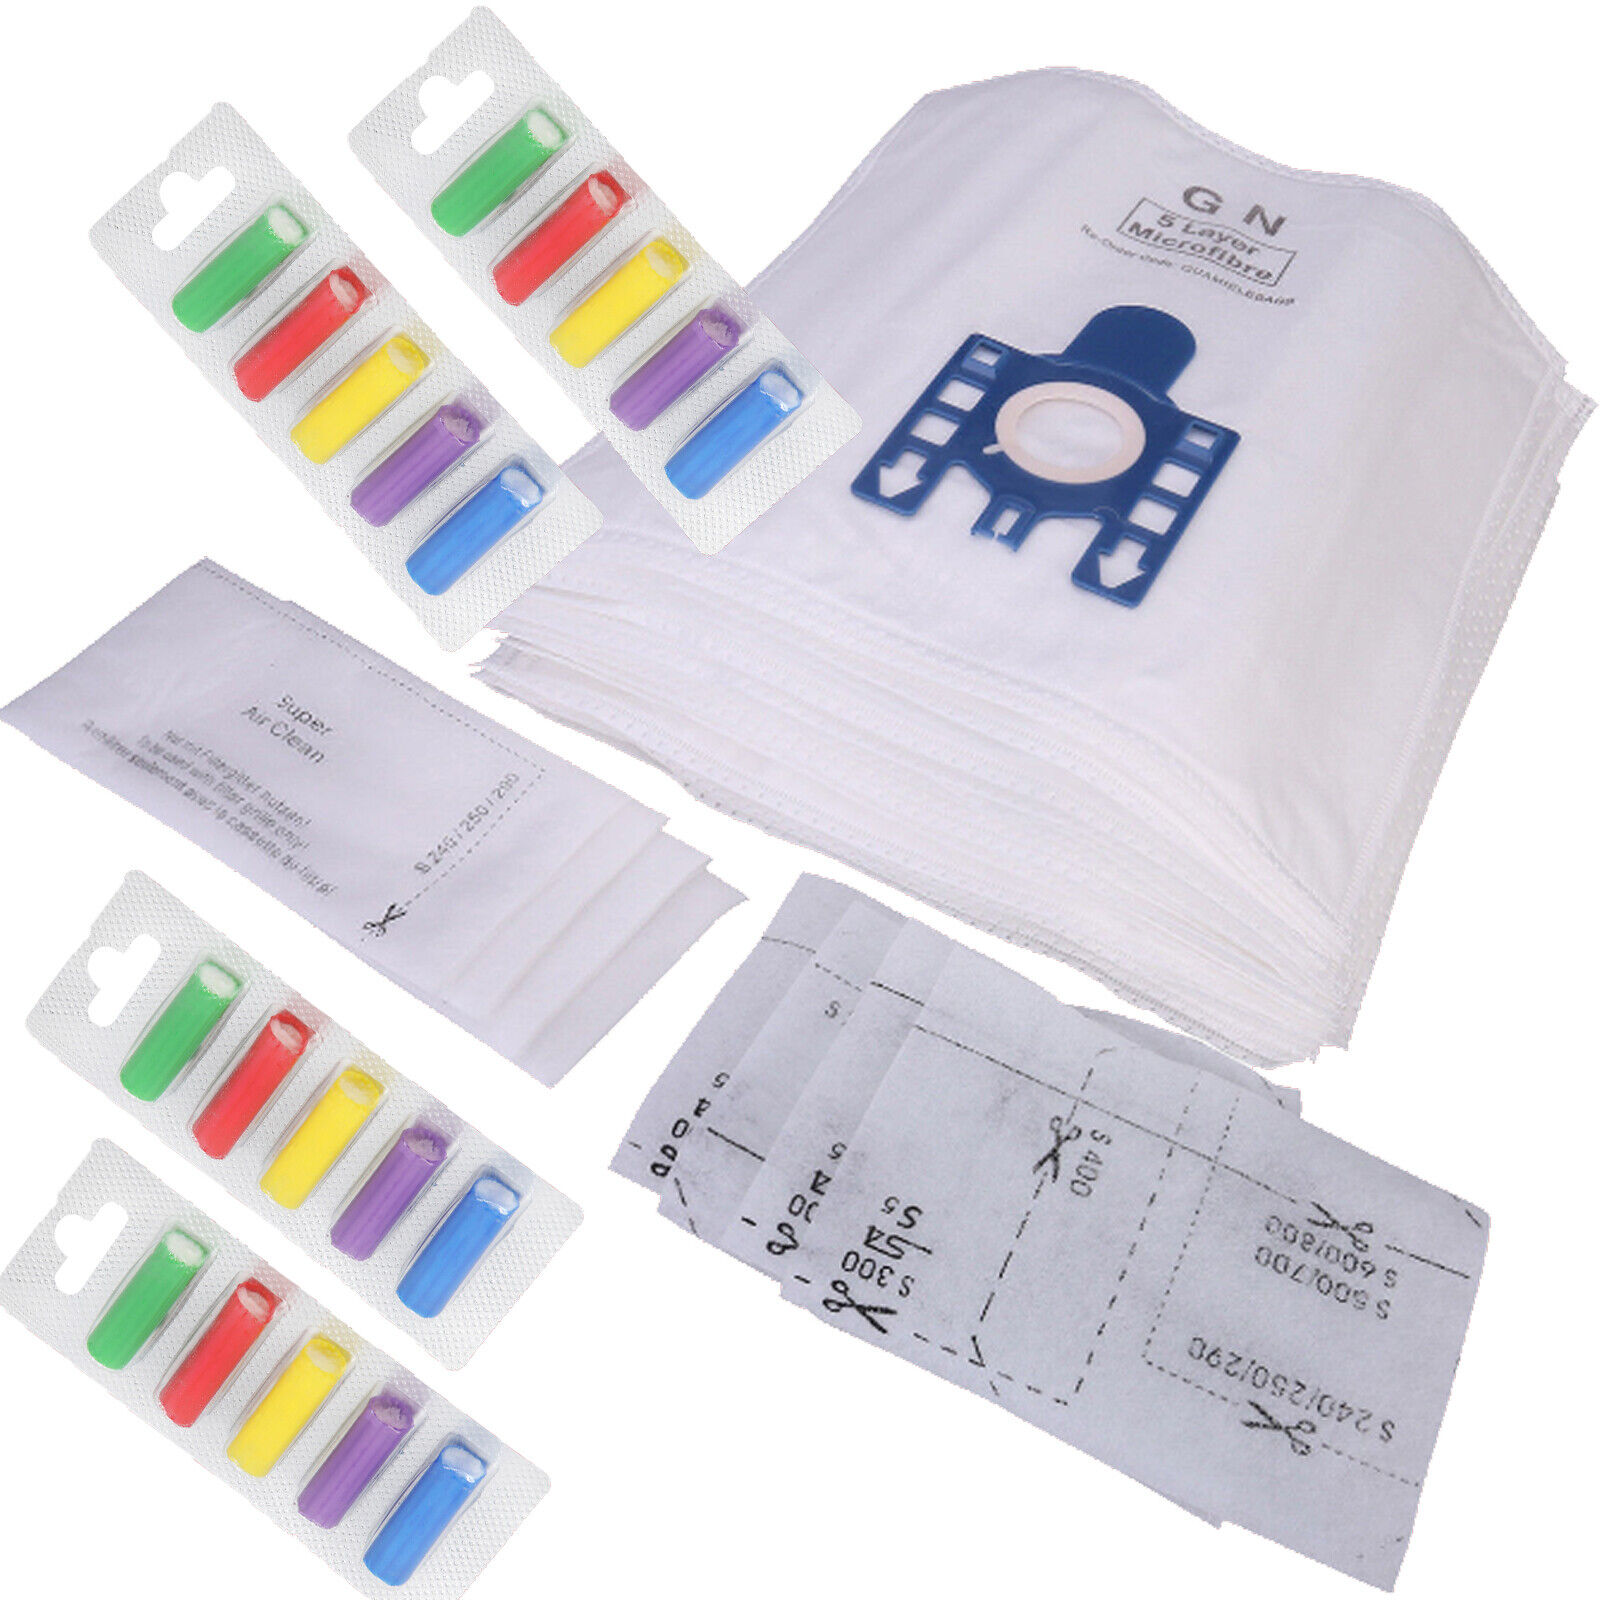 20 FJM Microfibre Vacuum Bags For Miele Compact 20 FREE Fresheners 4 Filters